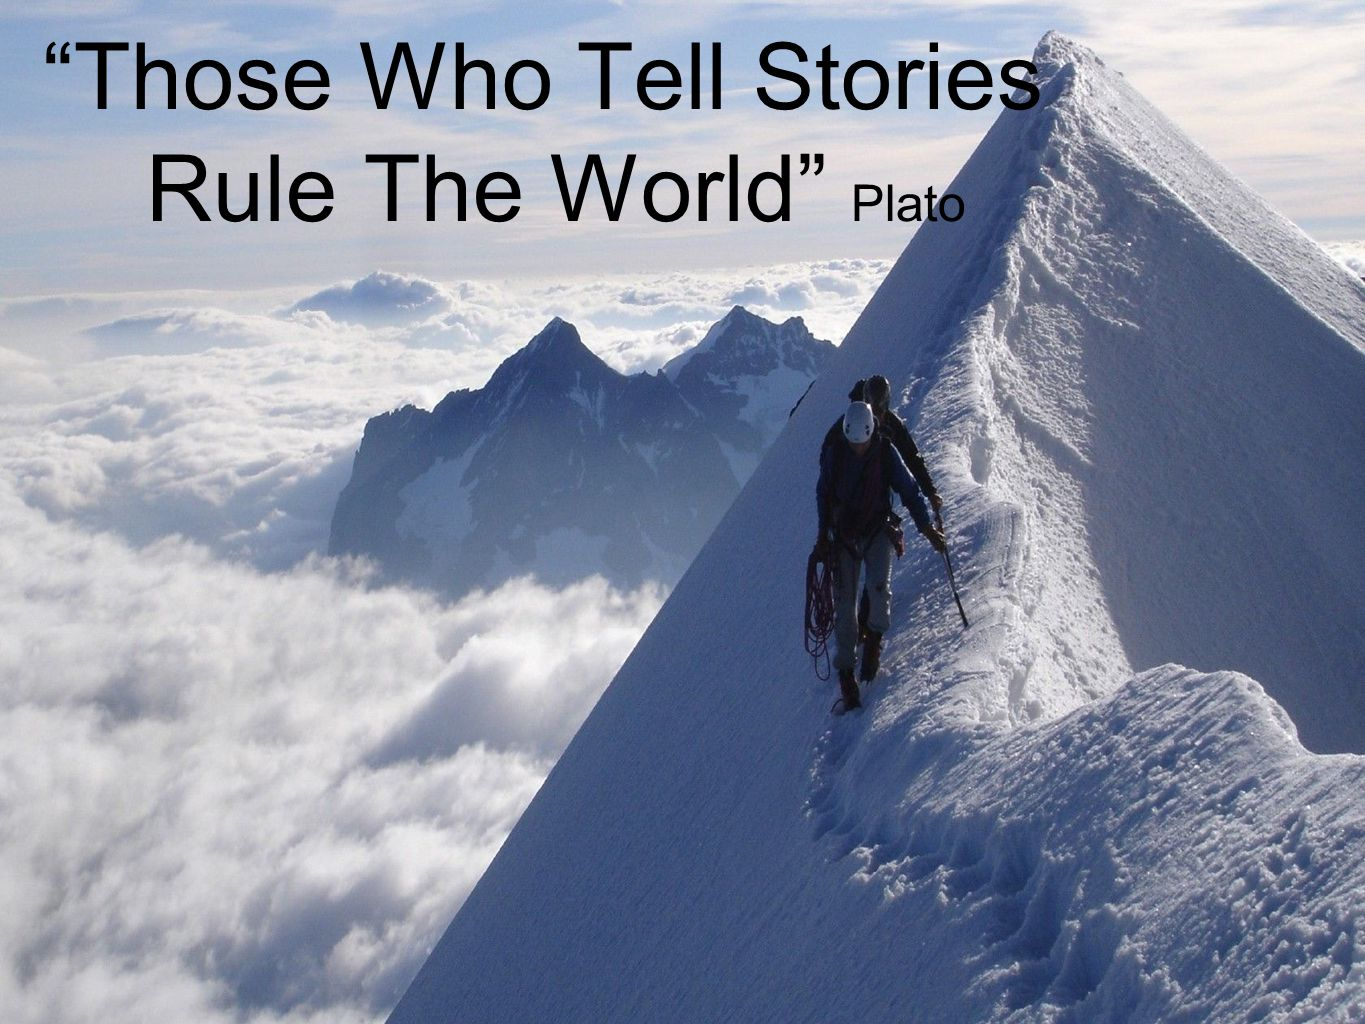 Those Who Tell Stories Rule The World Plato